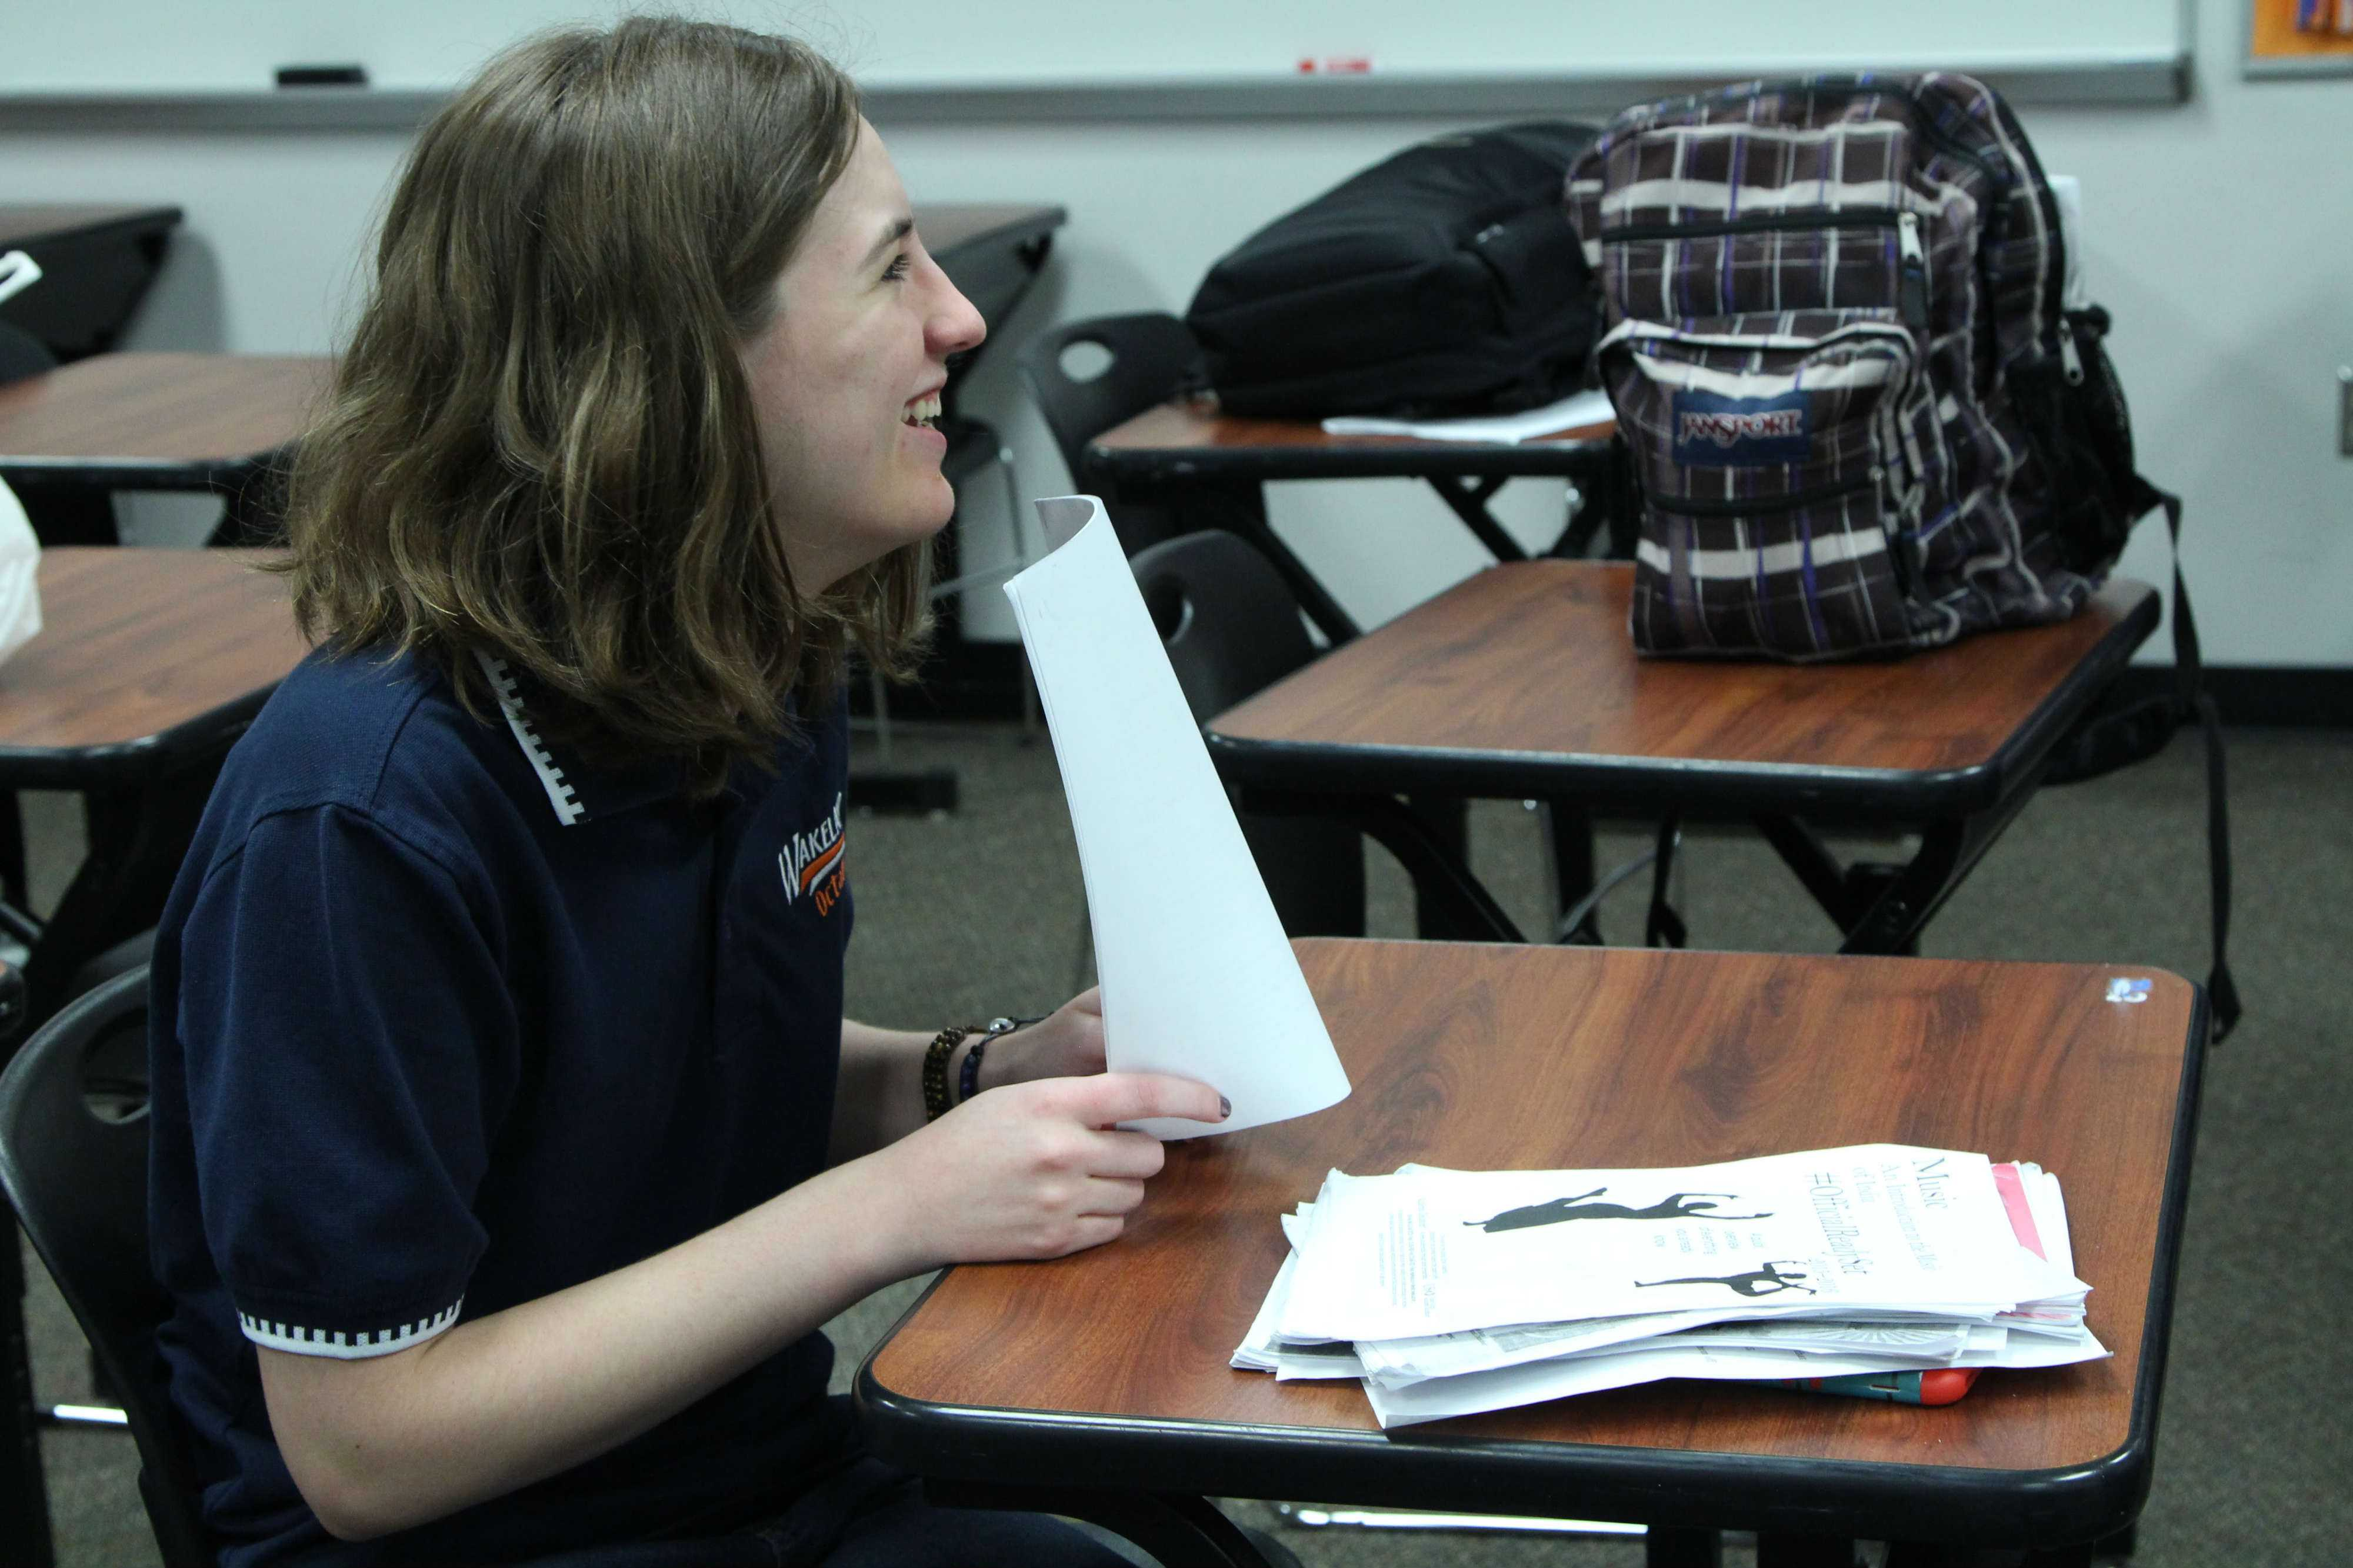 Sophomore Reece Walter laughs at a joke while cramming for her Octathlon test on 